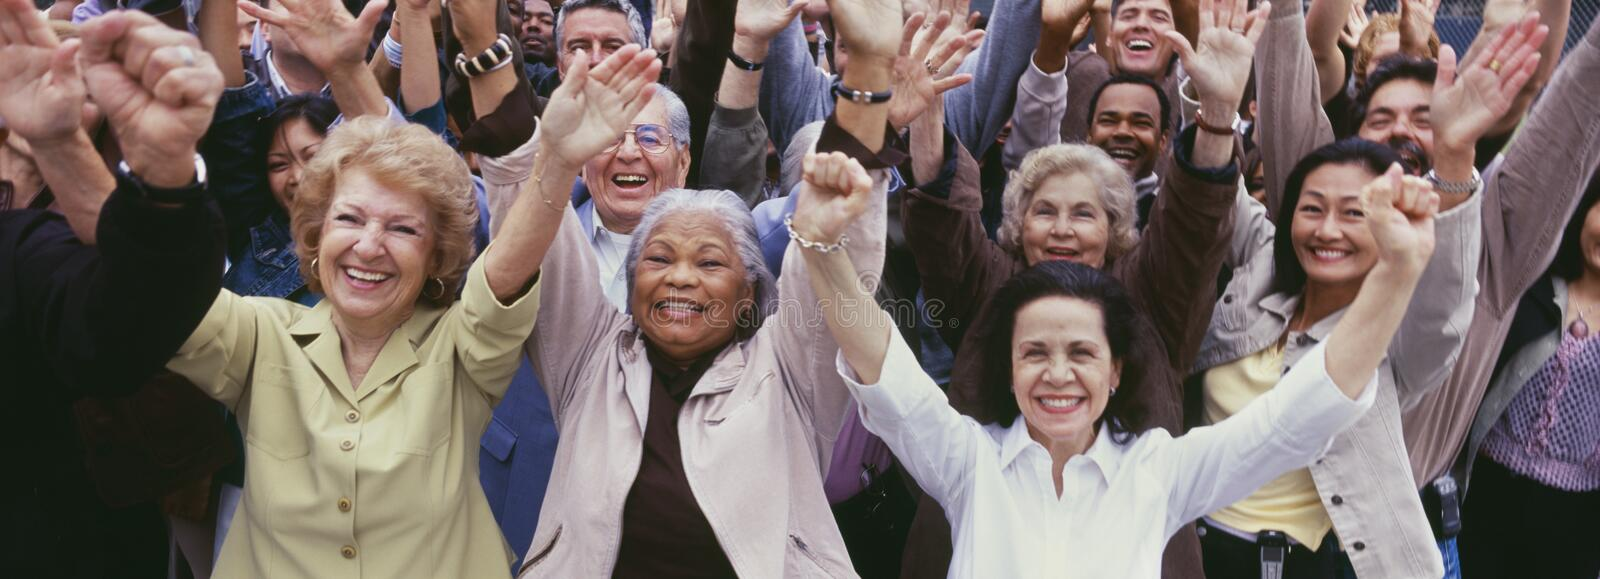 Large group of multi-ethnic people cheering with arms raised royalty free stock images